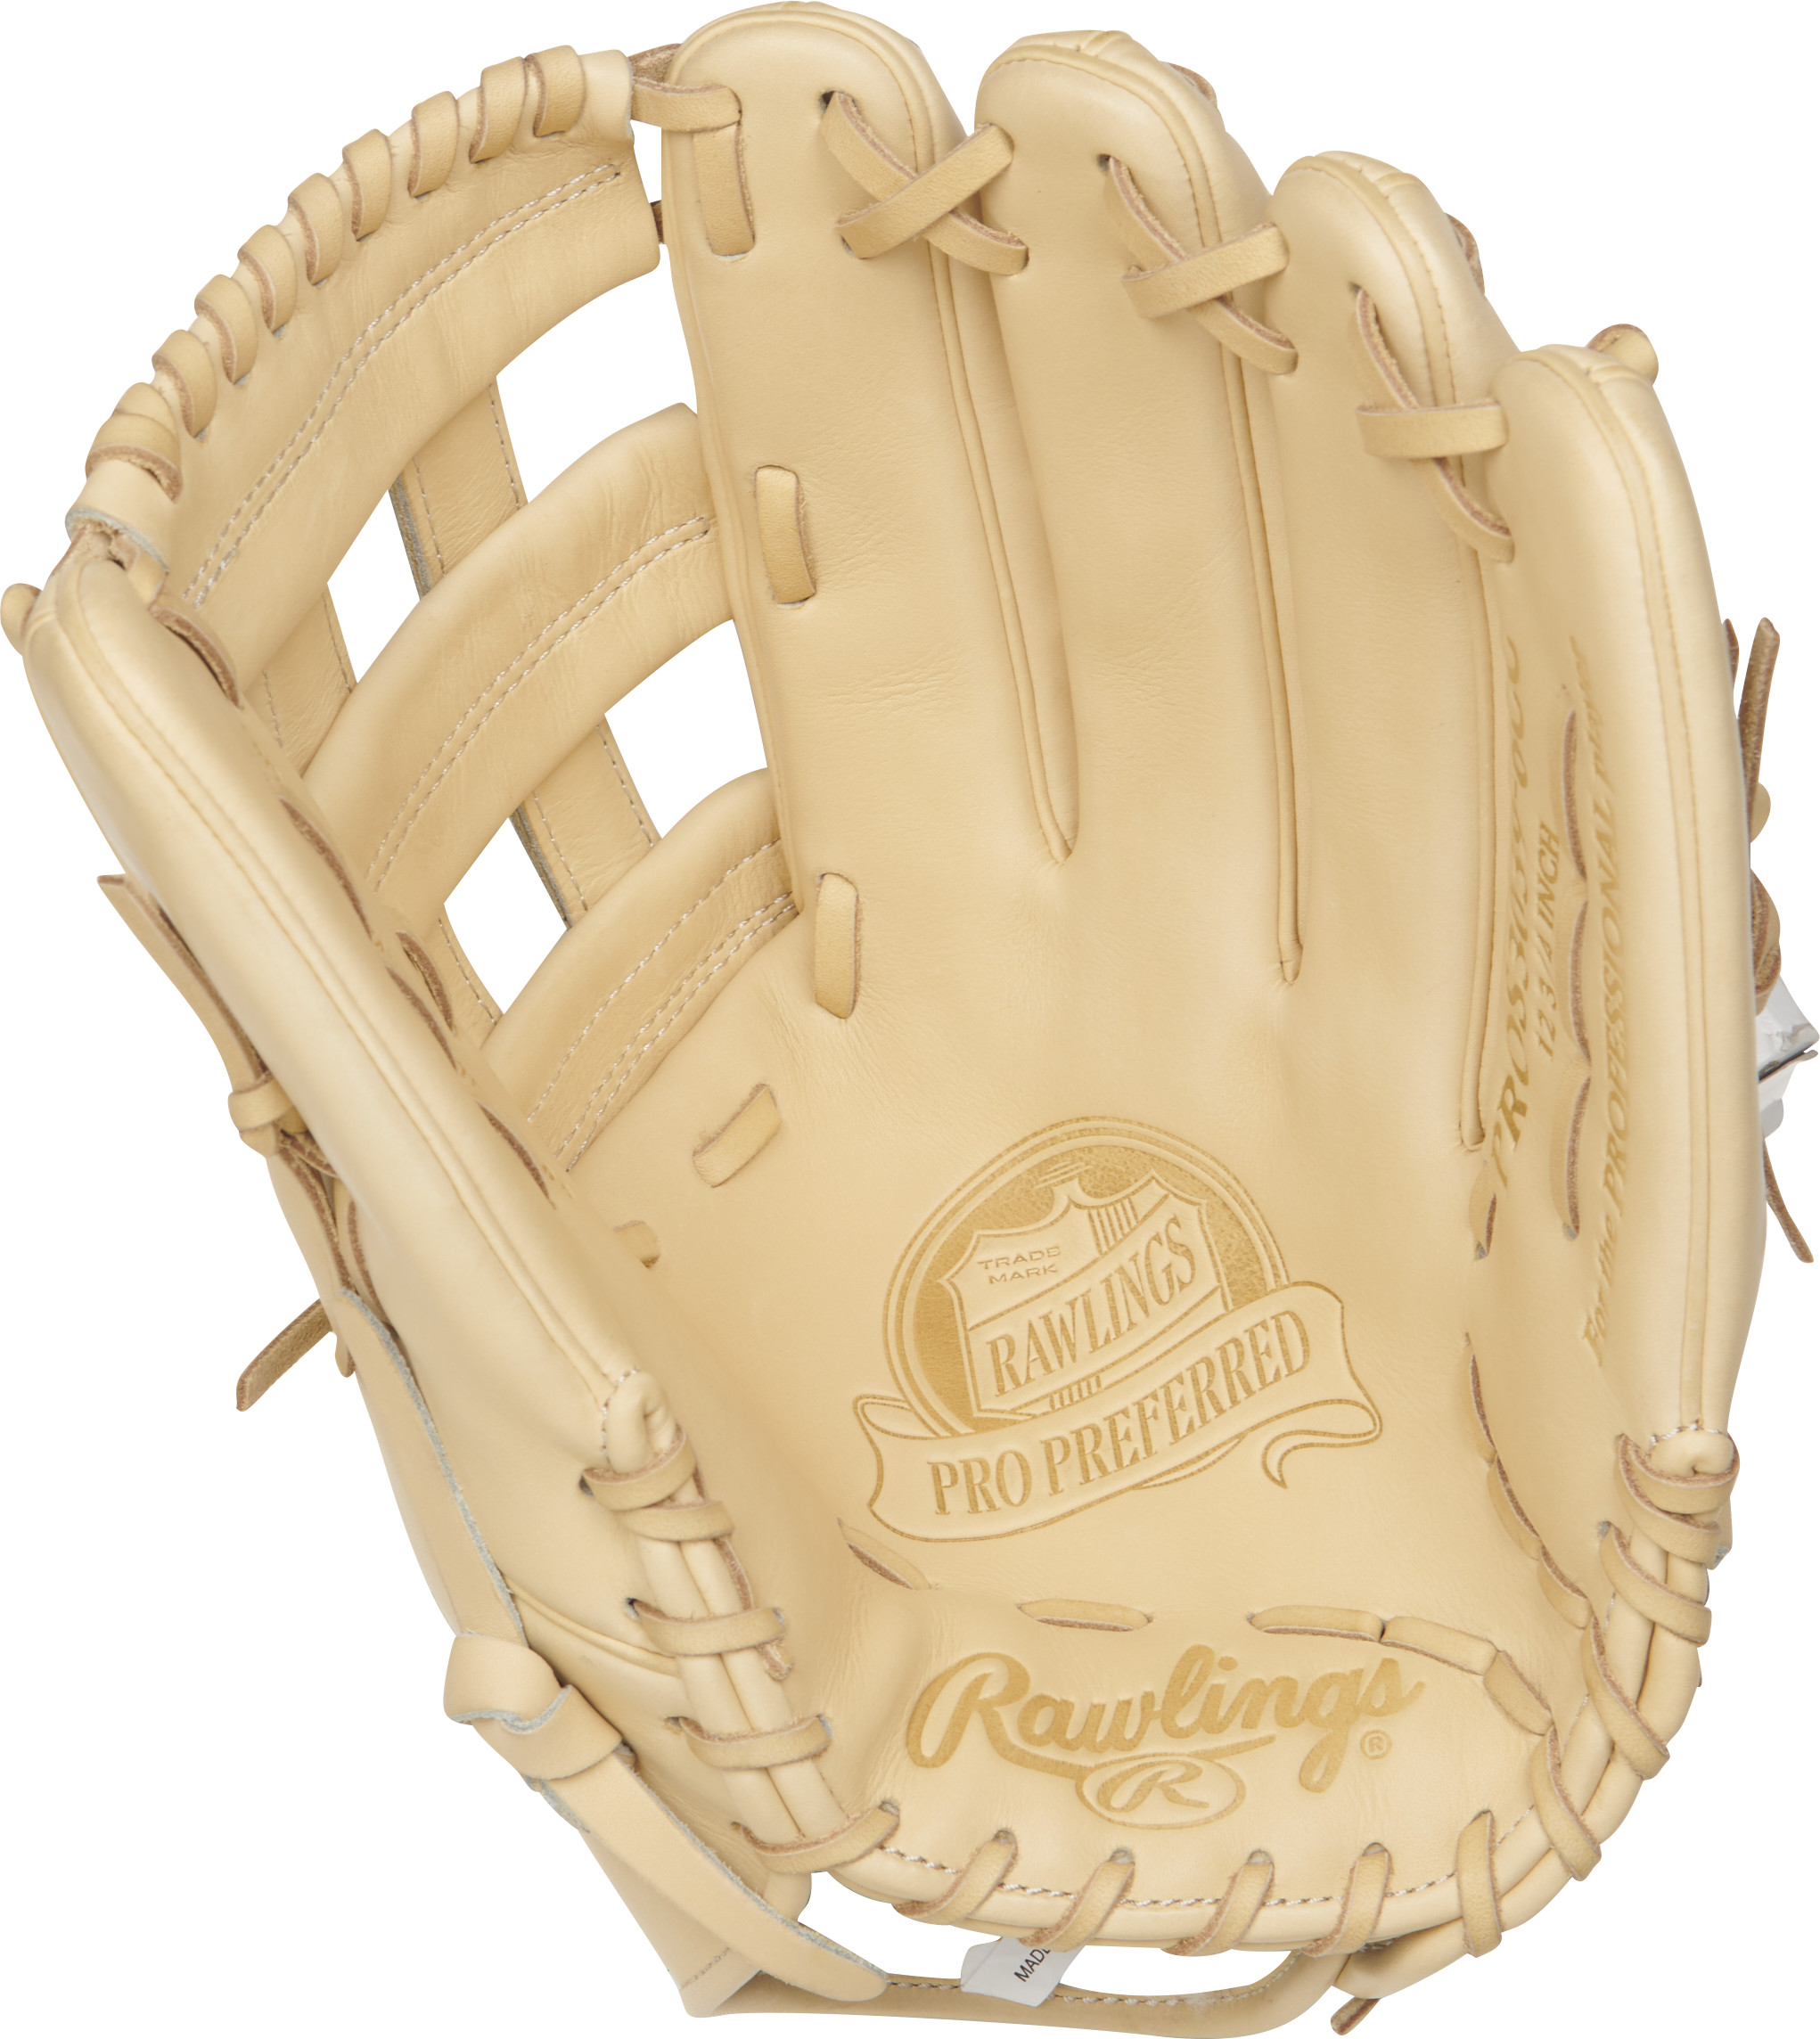 http://www.bestbatdeals.com/images/gloves/rawlings/PROS3039-6CC-1.jpg